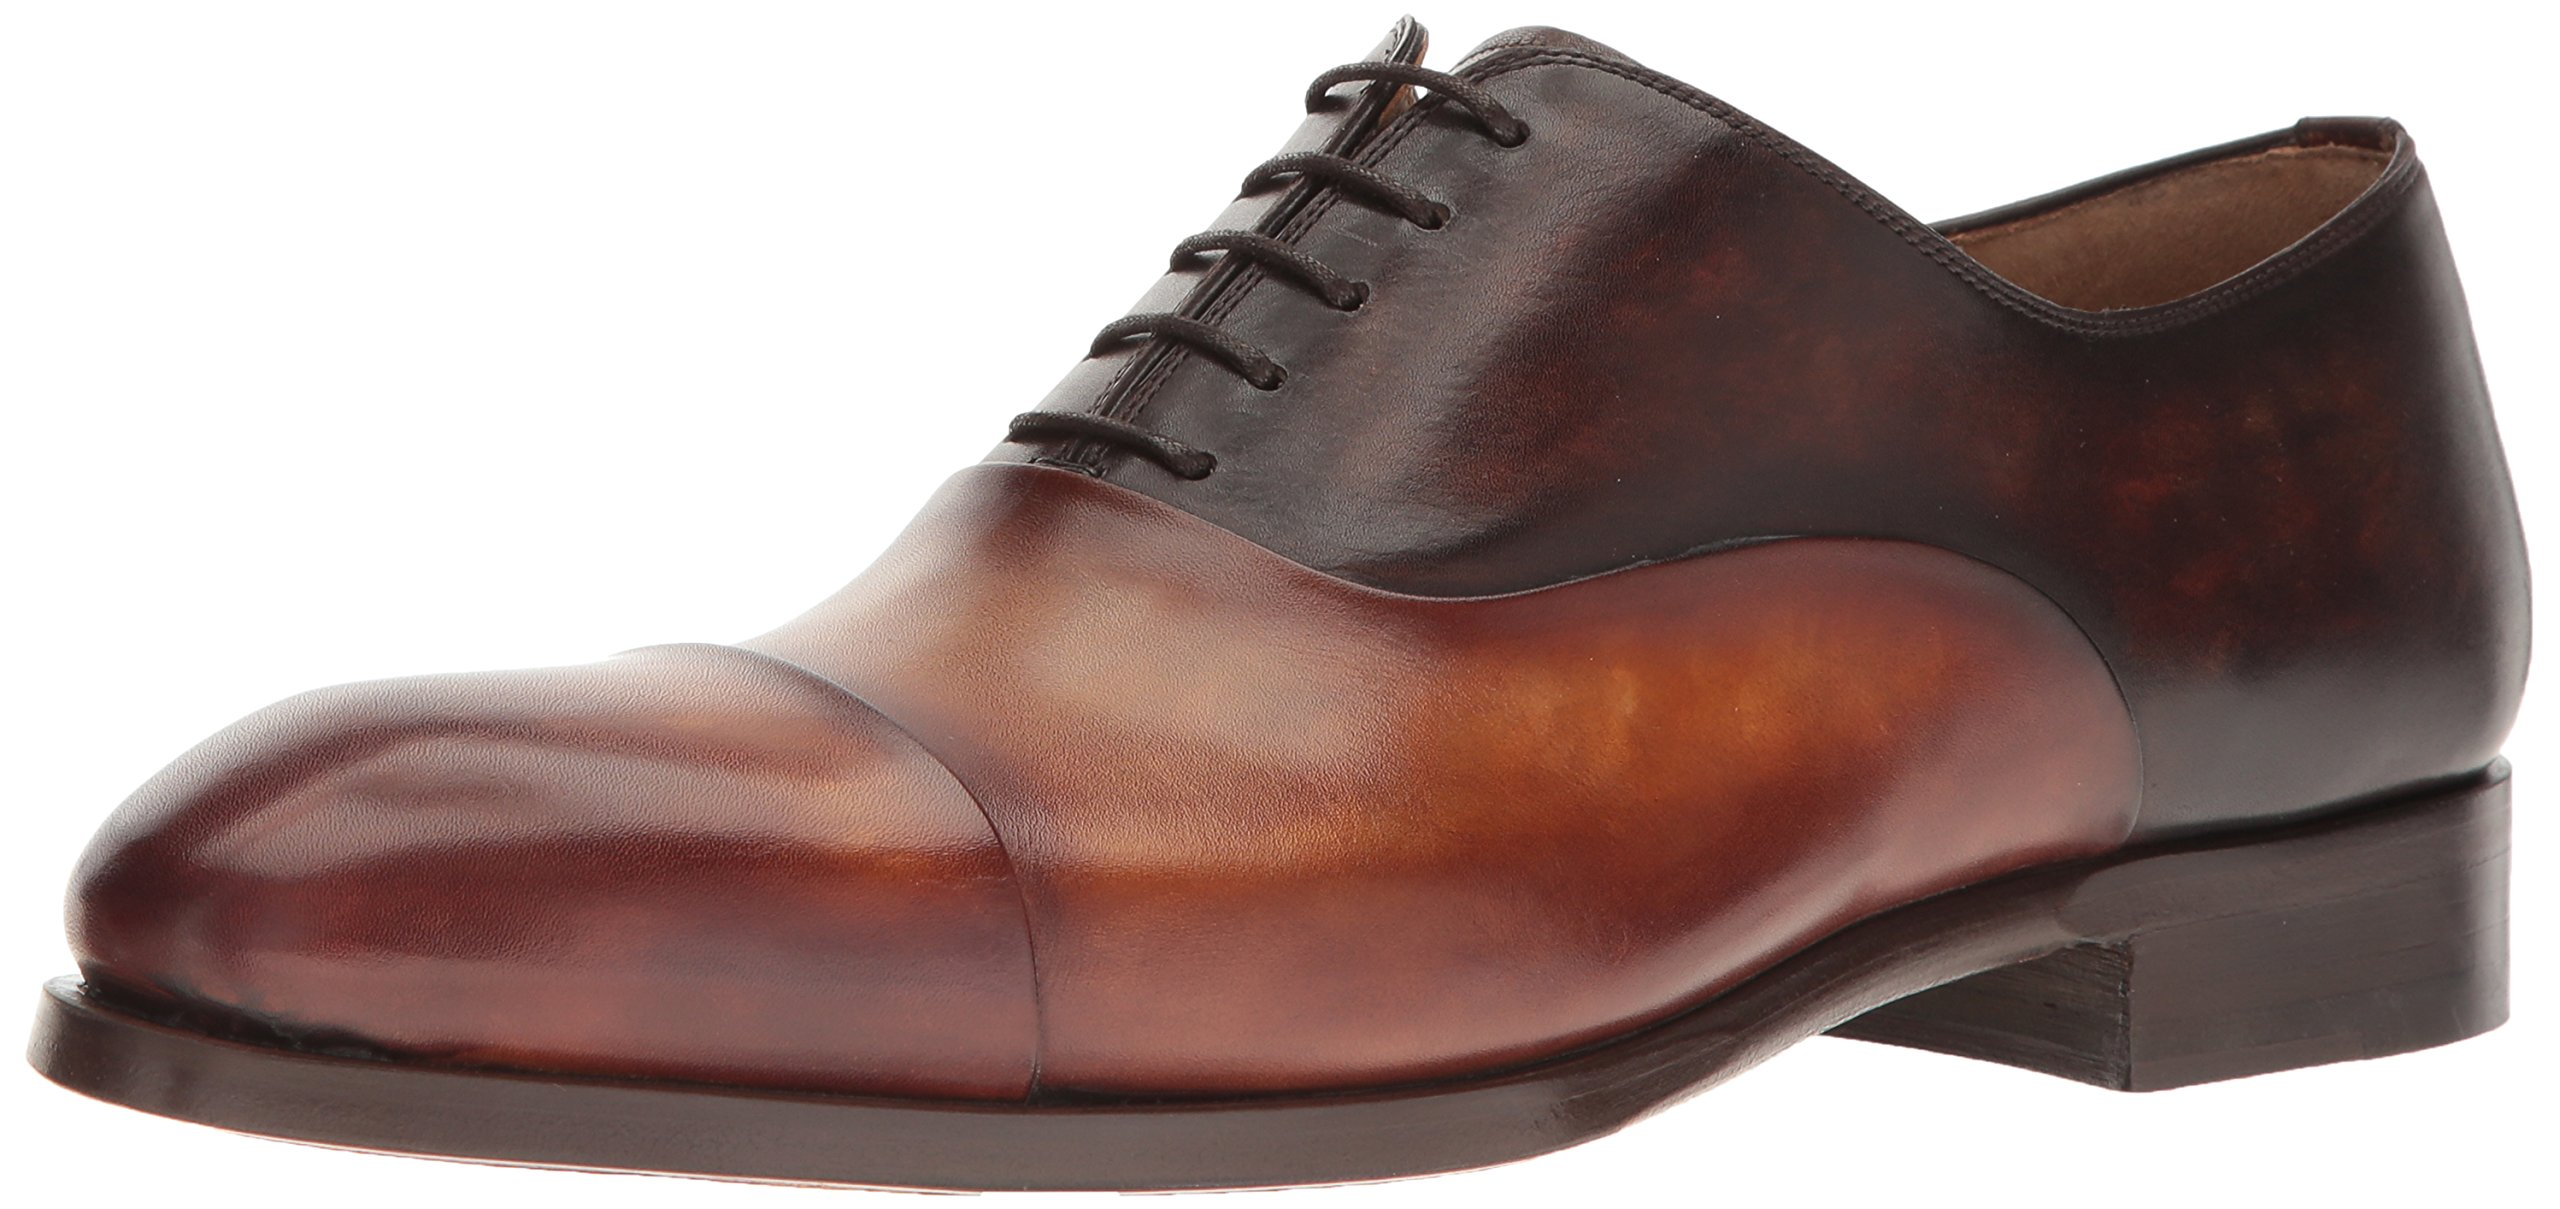 MagnanniMen's Golay Cap Toe Oxford